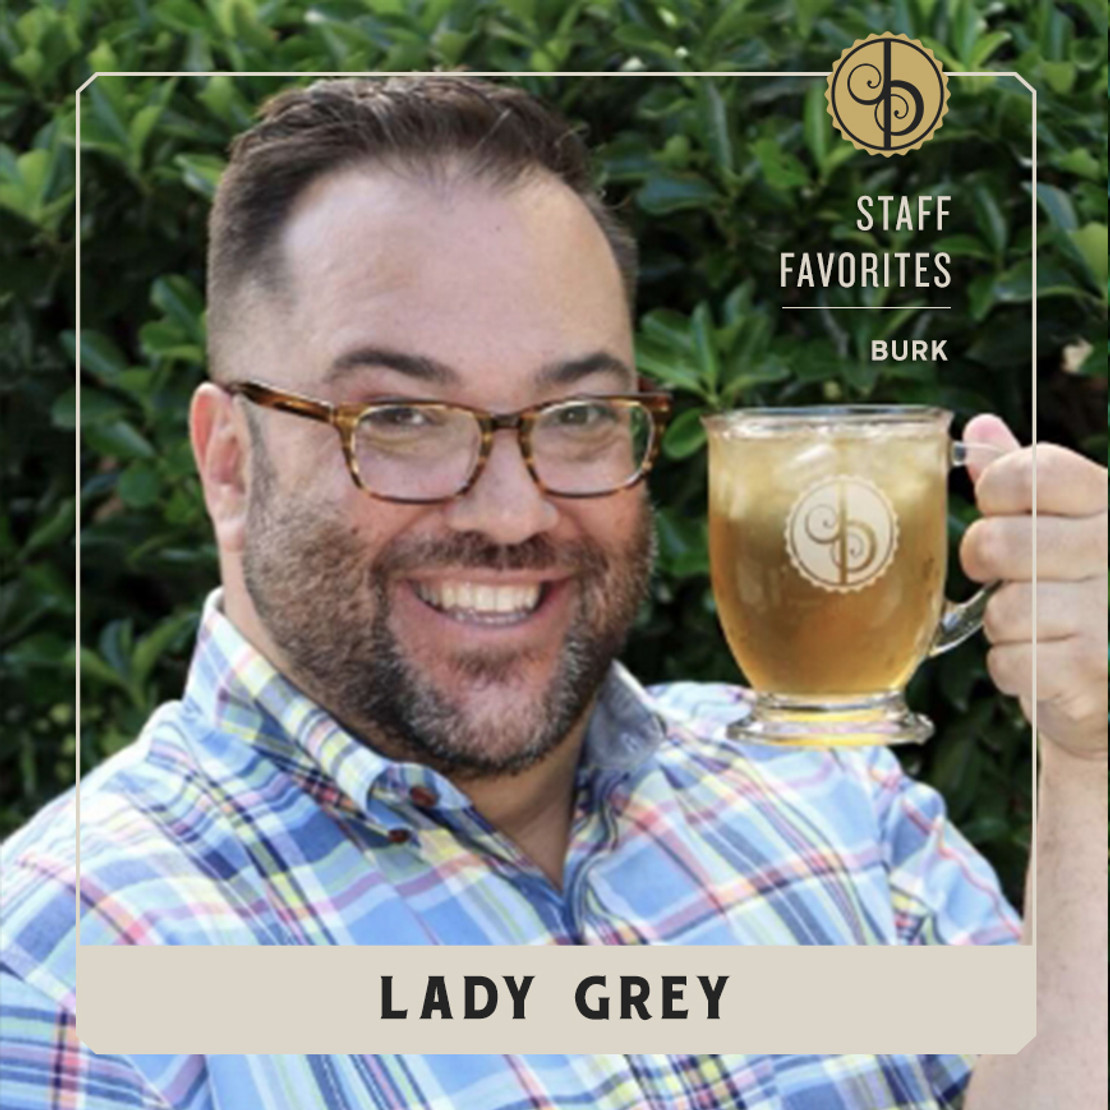 Staff Favorites: Burk & Lady Grey